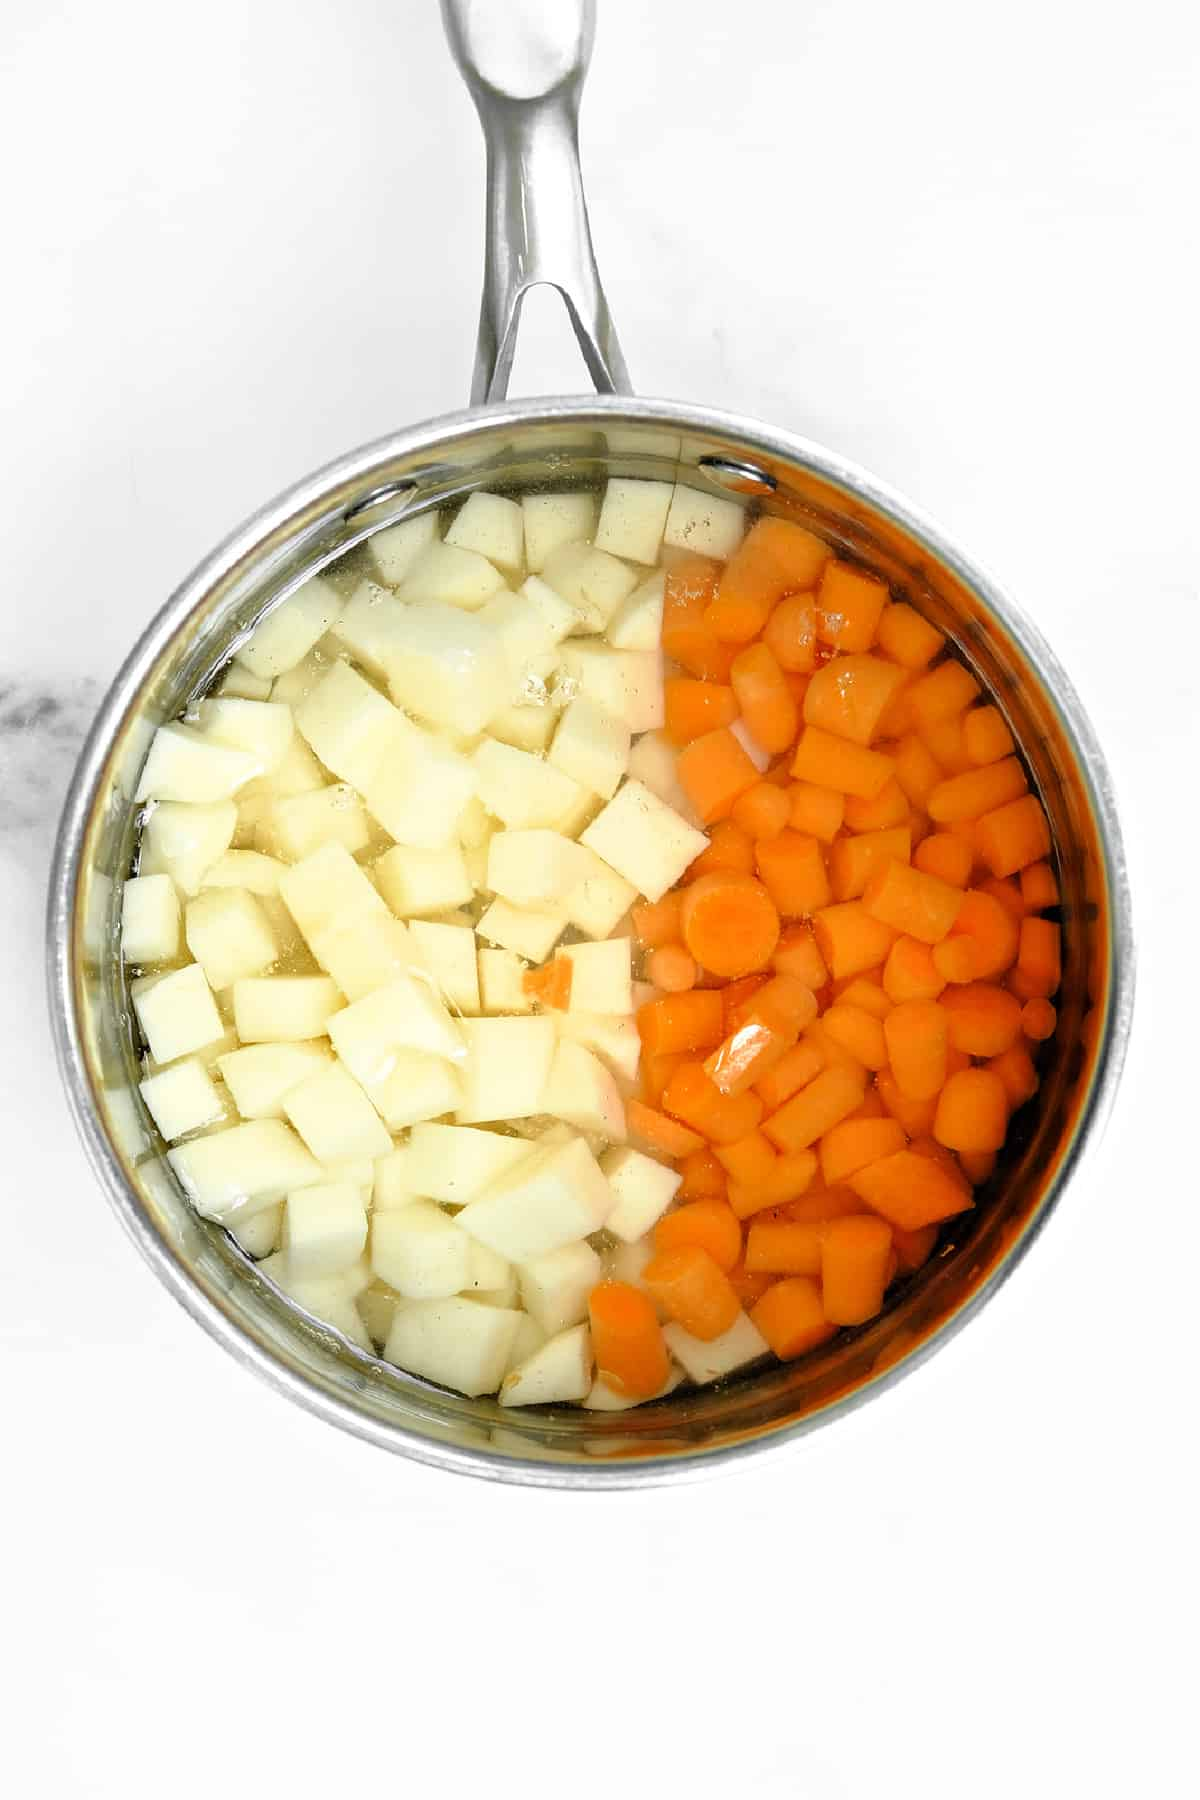 potatoes and carrots in a pot